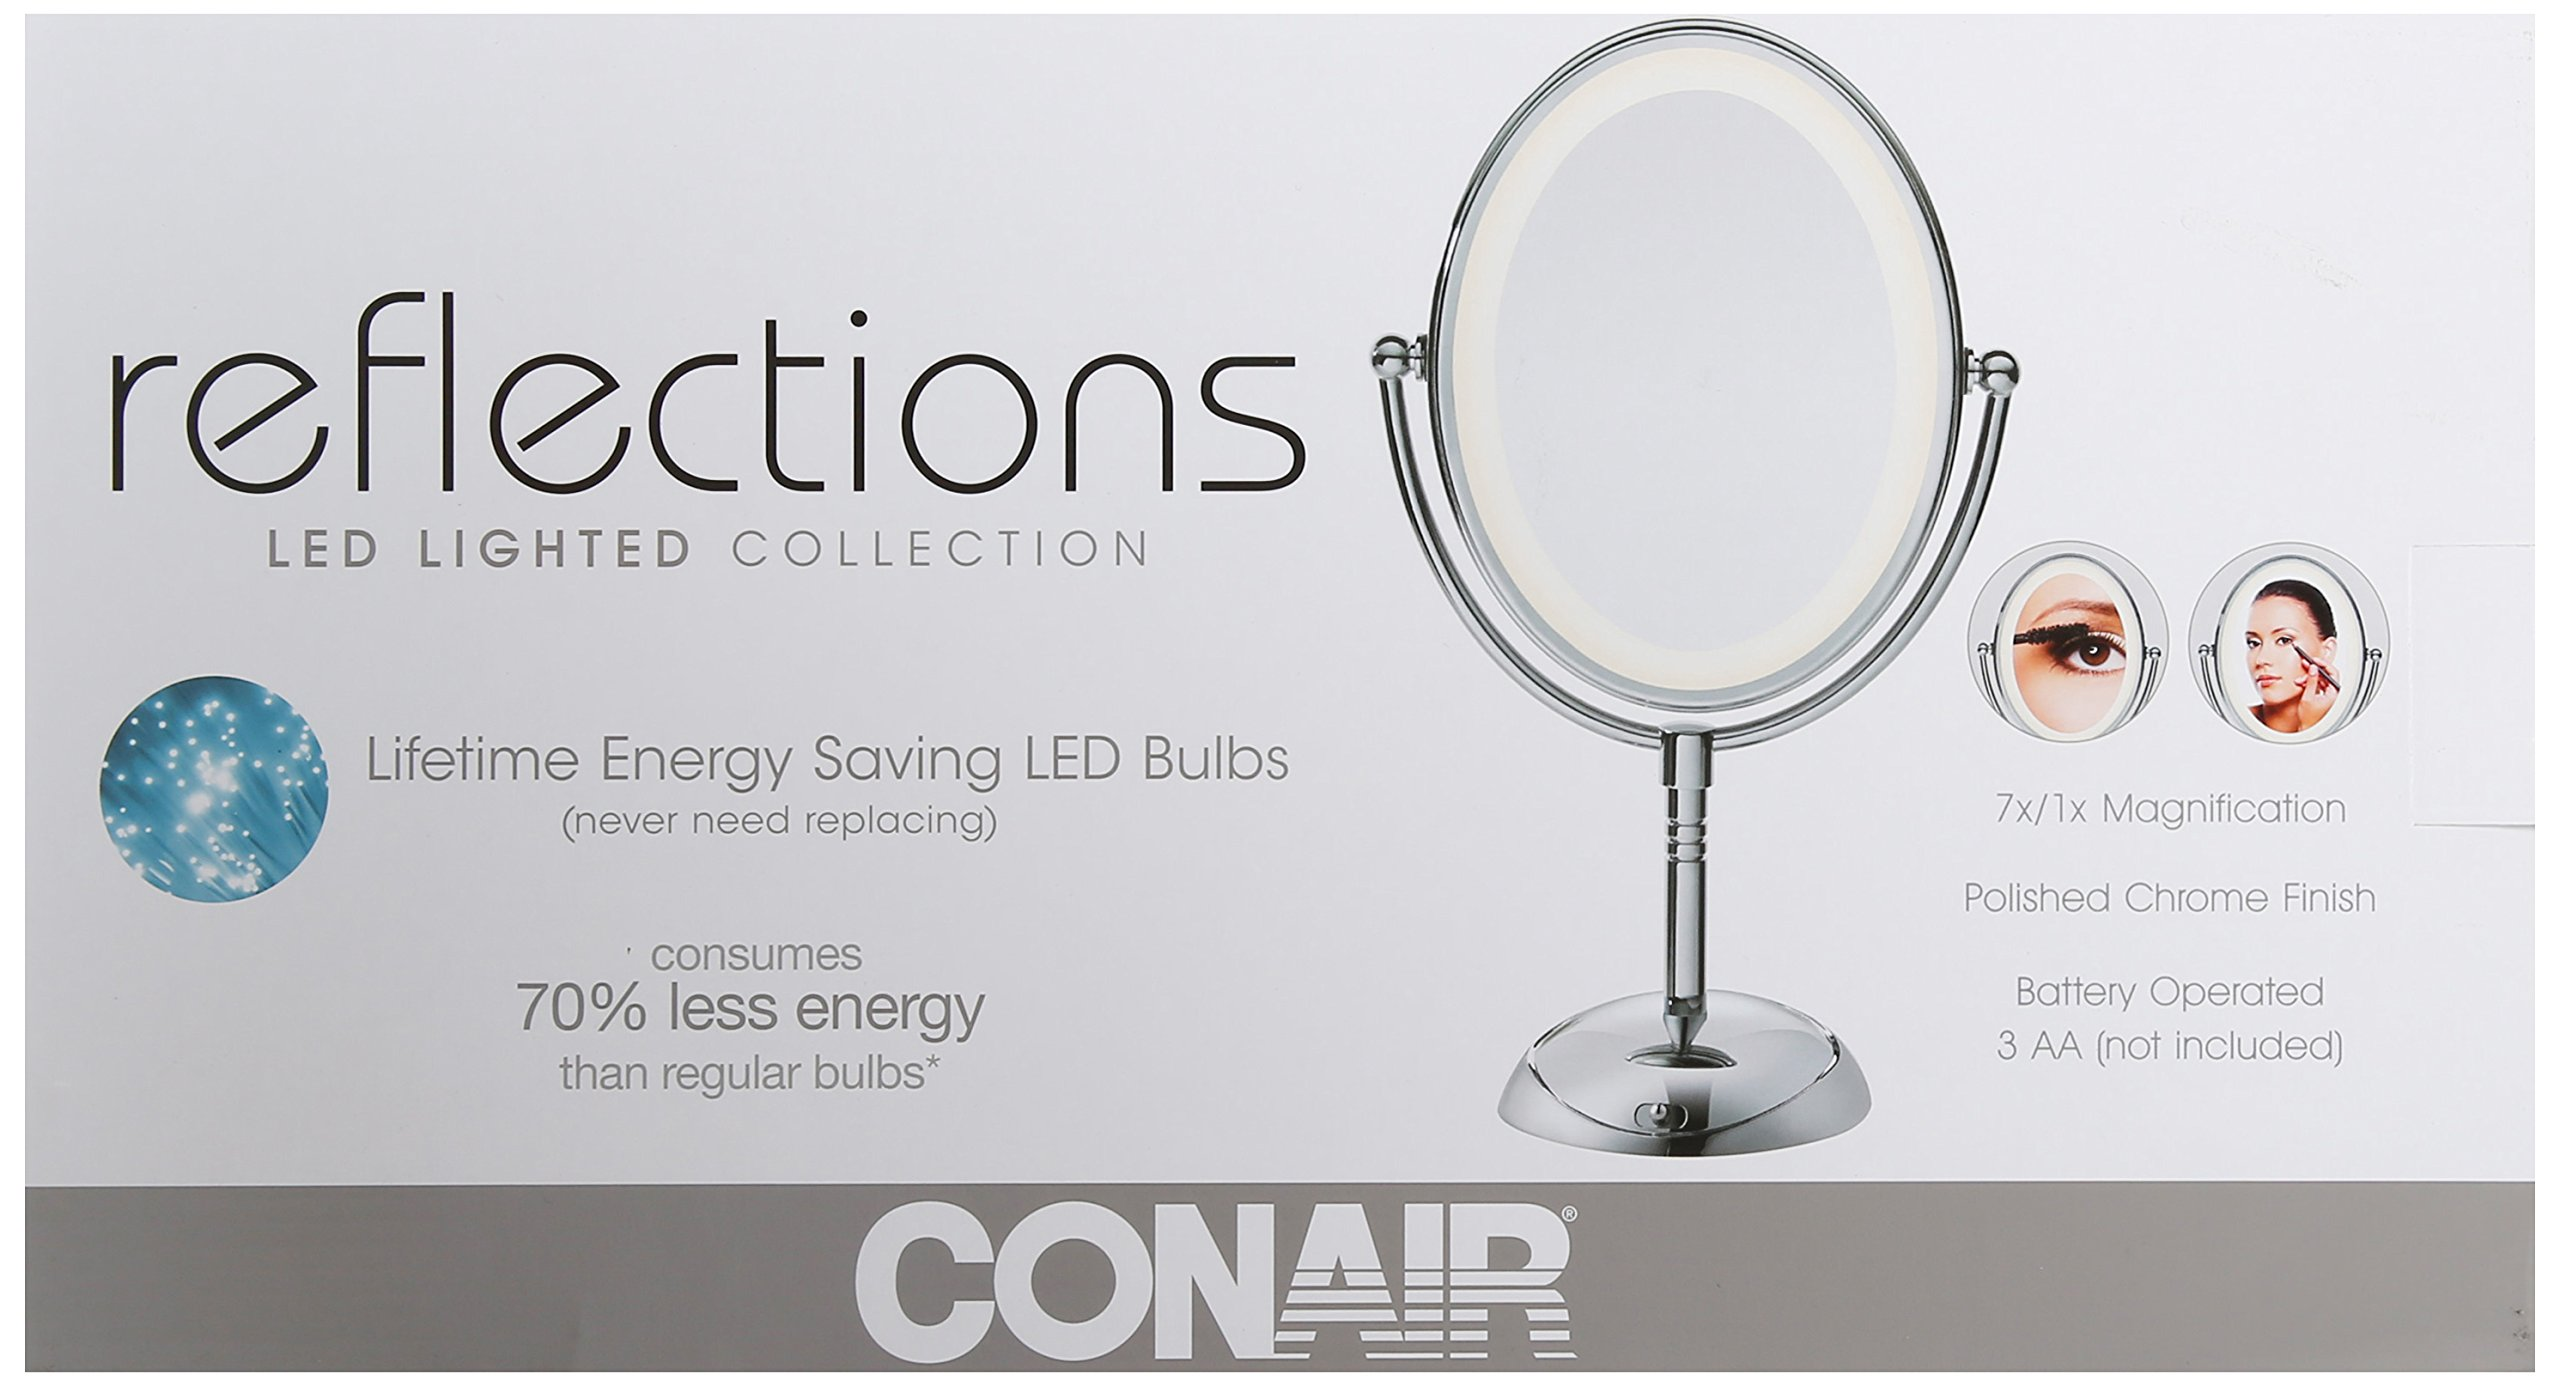 Conair Oval Shaped LED Double-Sided Lighted Makeup Mirror; 1x/7x magnification; Polished Chrome Finish by Conair (Image #7)